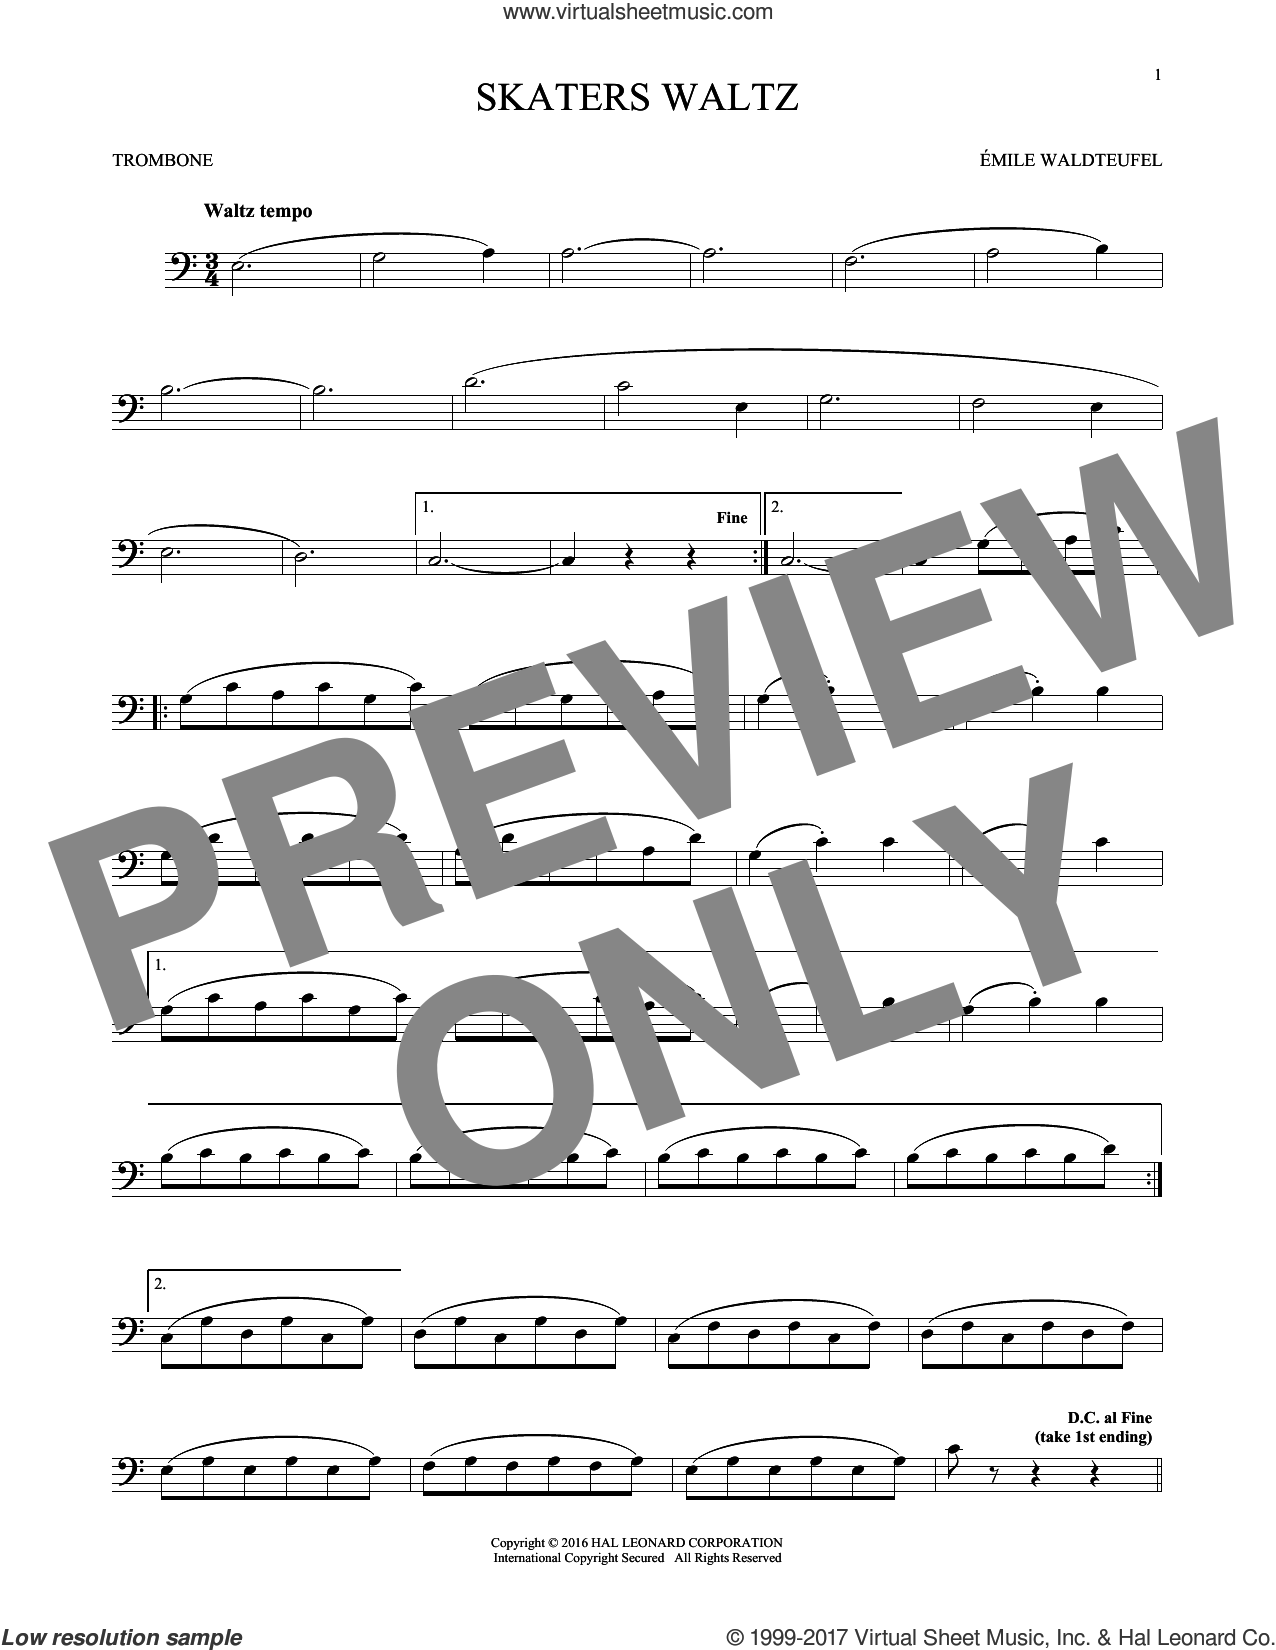 The Skaters (Waltz) sheet music for trombone solo by Emile Waldteufel, classical score, intermediate skill level